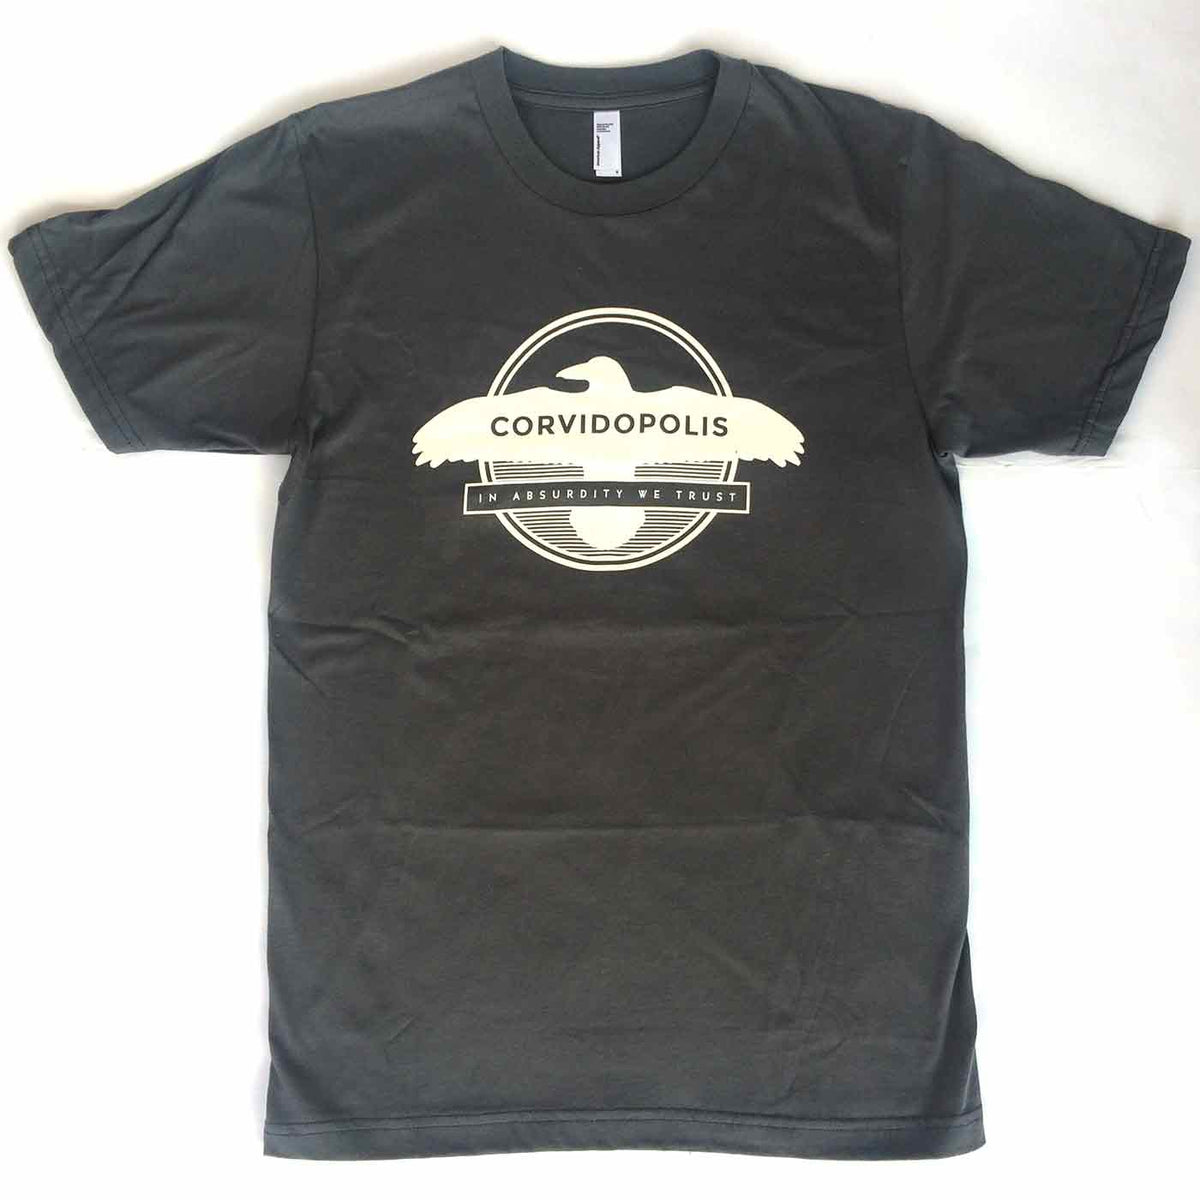 In Absurdity We Trust Corvidopolis Tee